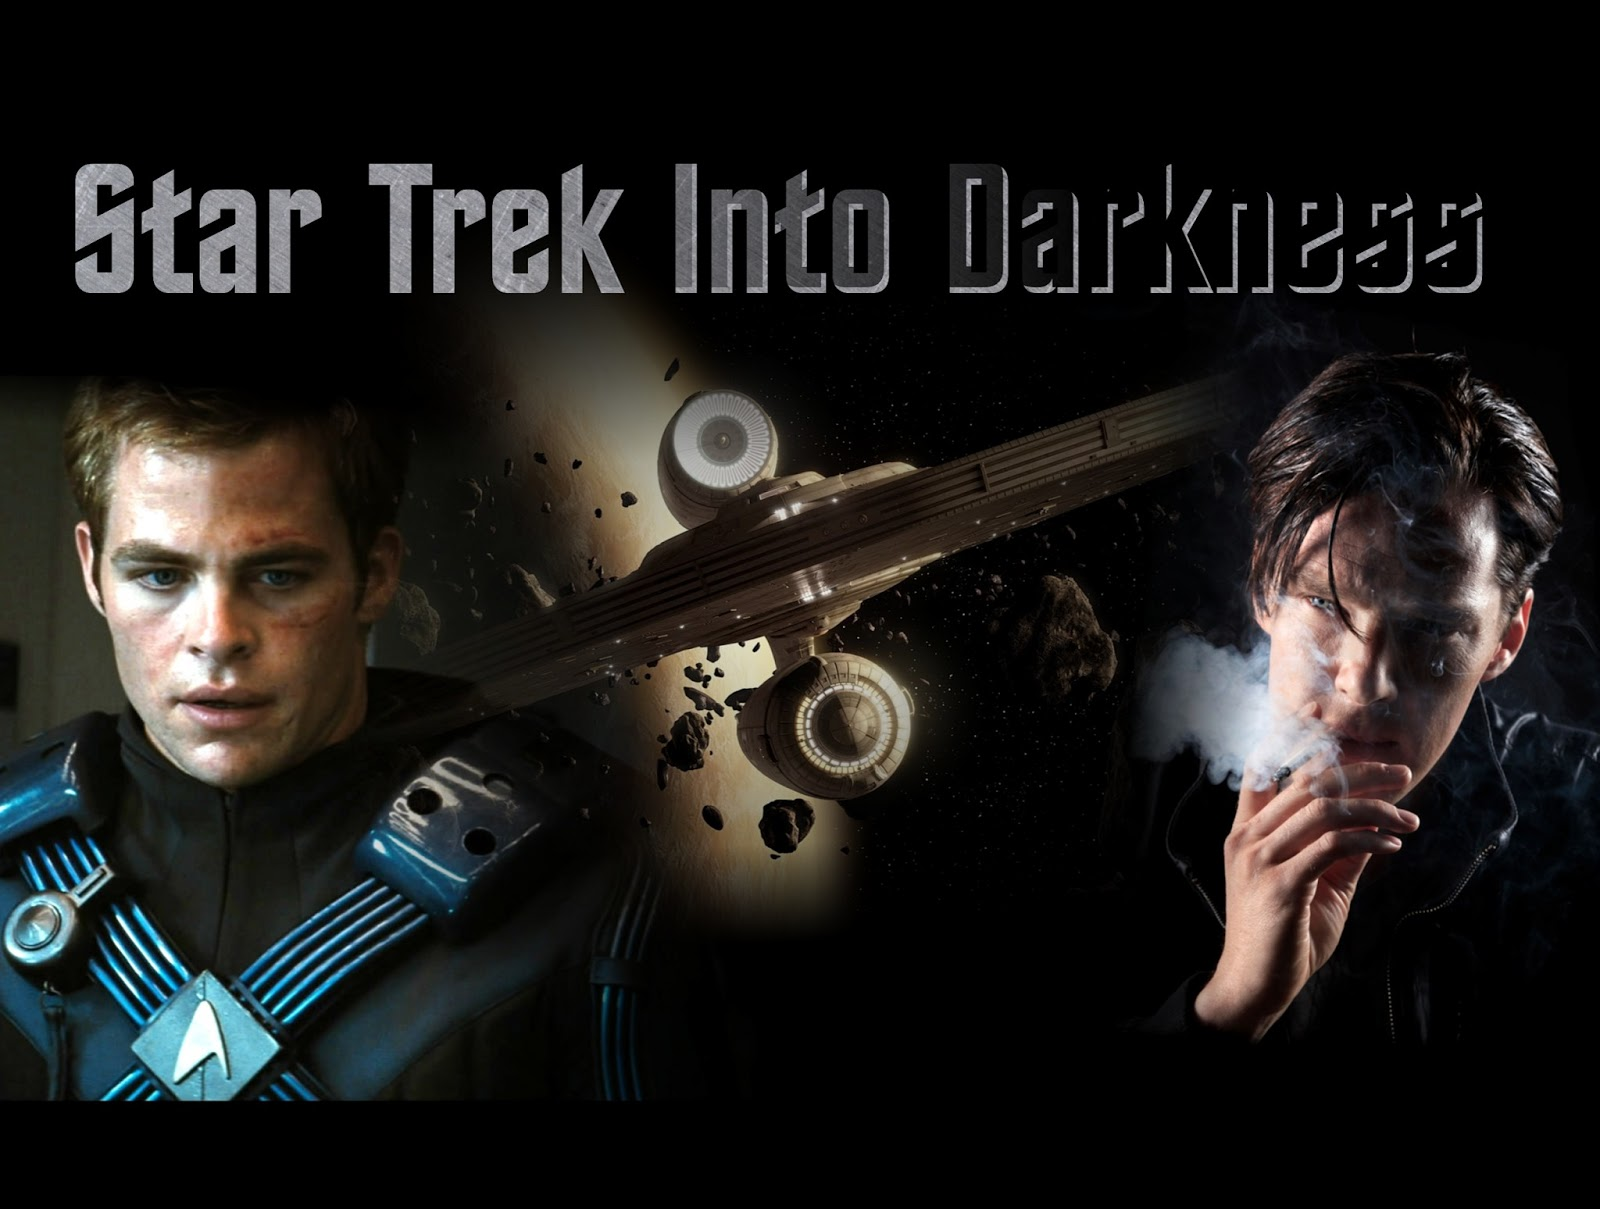 Star Trek Into Darkness Wallpapers: Star Trek Into Darkness Movie Free Downloads HD Wallpapers